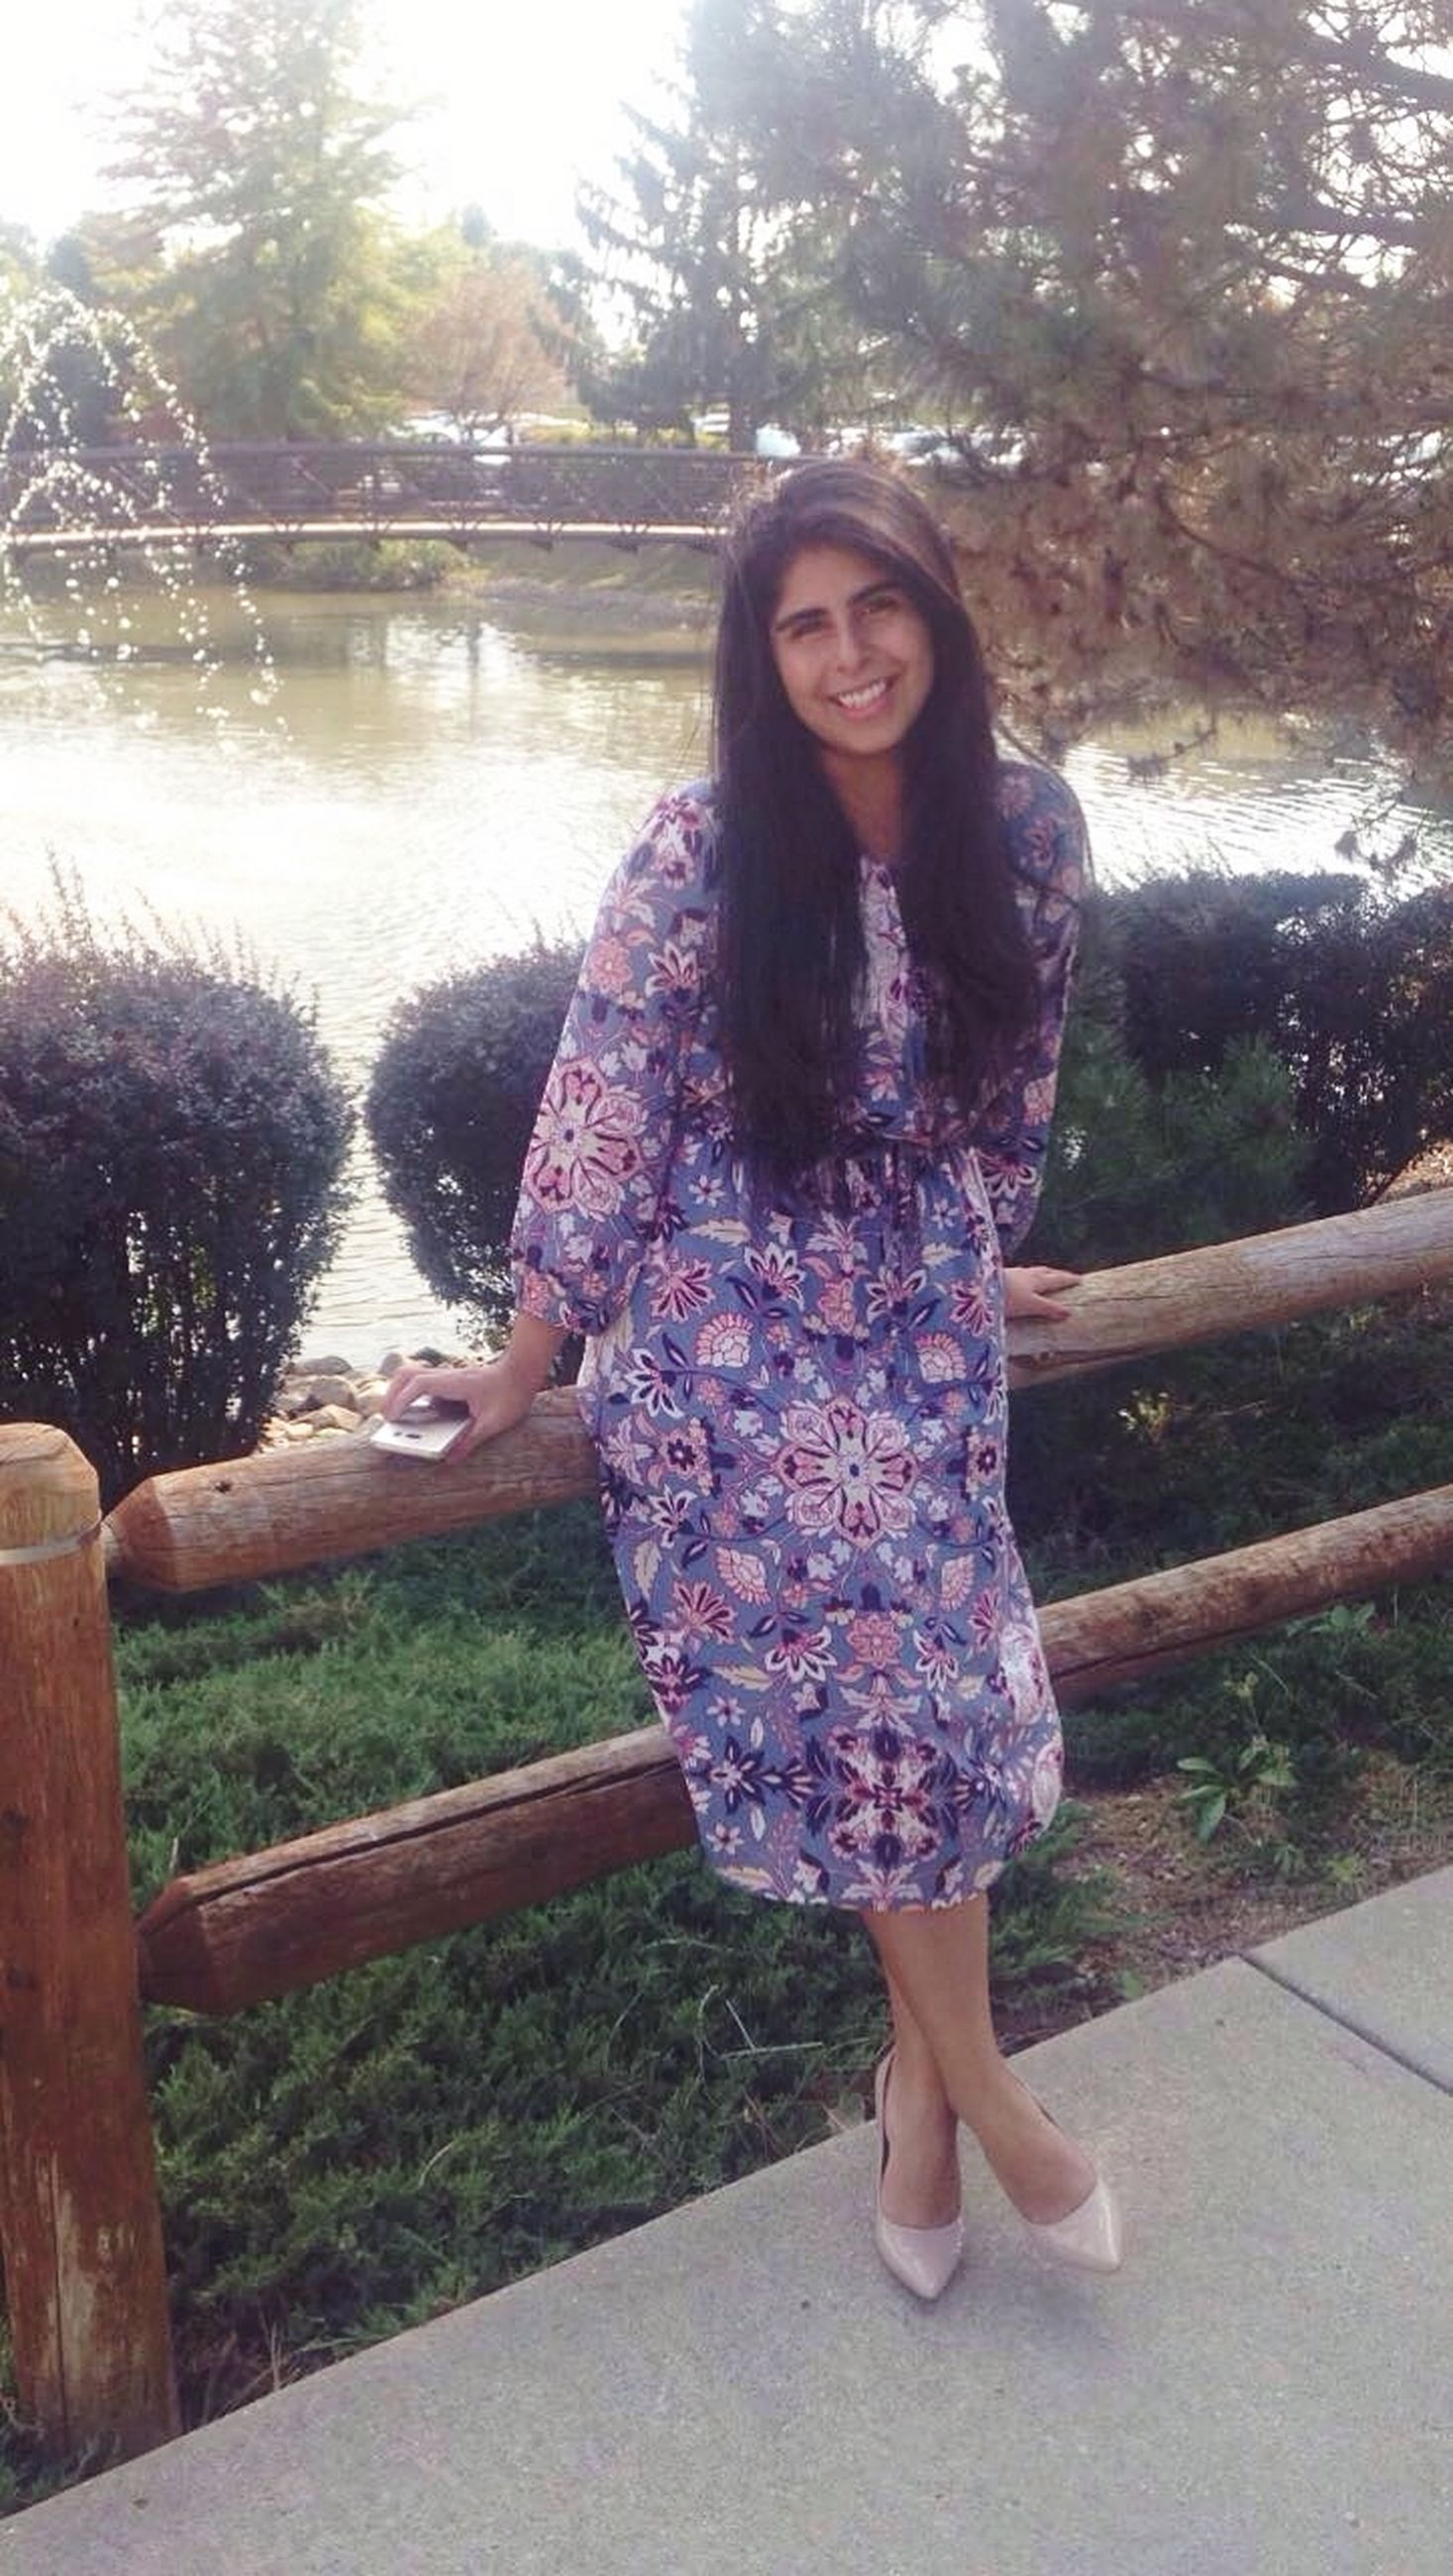 full length, one person, real people, leisure activity, young adult, smiling, young women, looking at camera, tree, casual clothing, beautiful woman, day, front view, happiness, lifestyles, outdoors, standing, portrait, park - man made space, nature, posing, growth, water